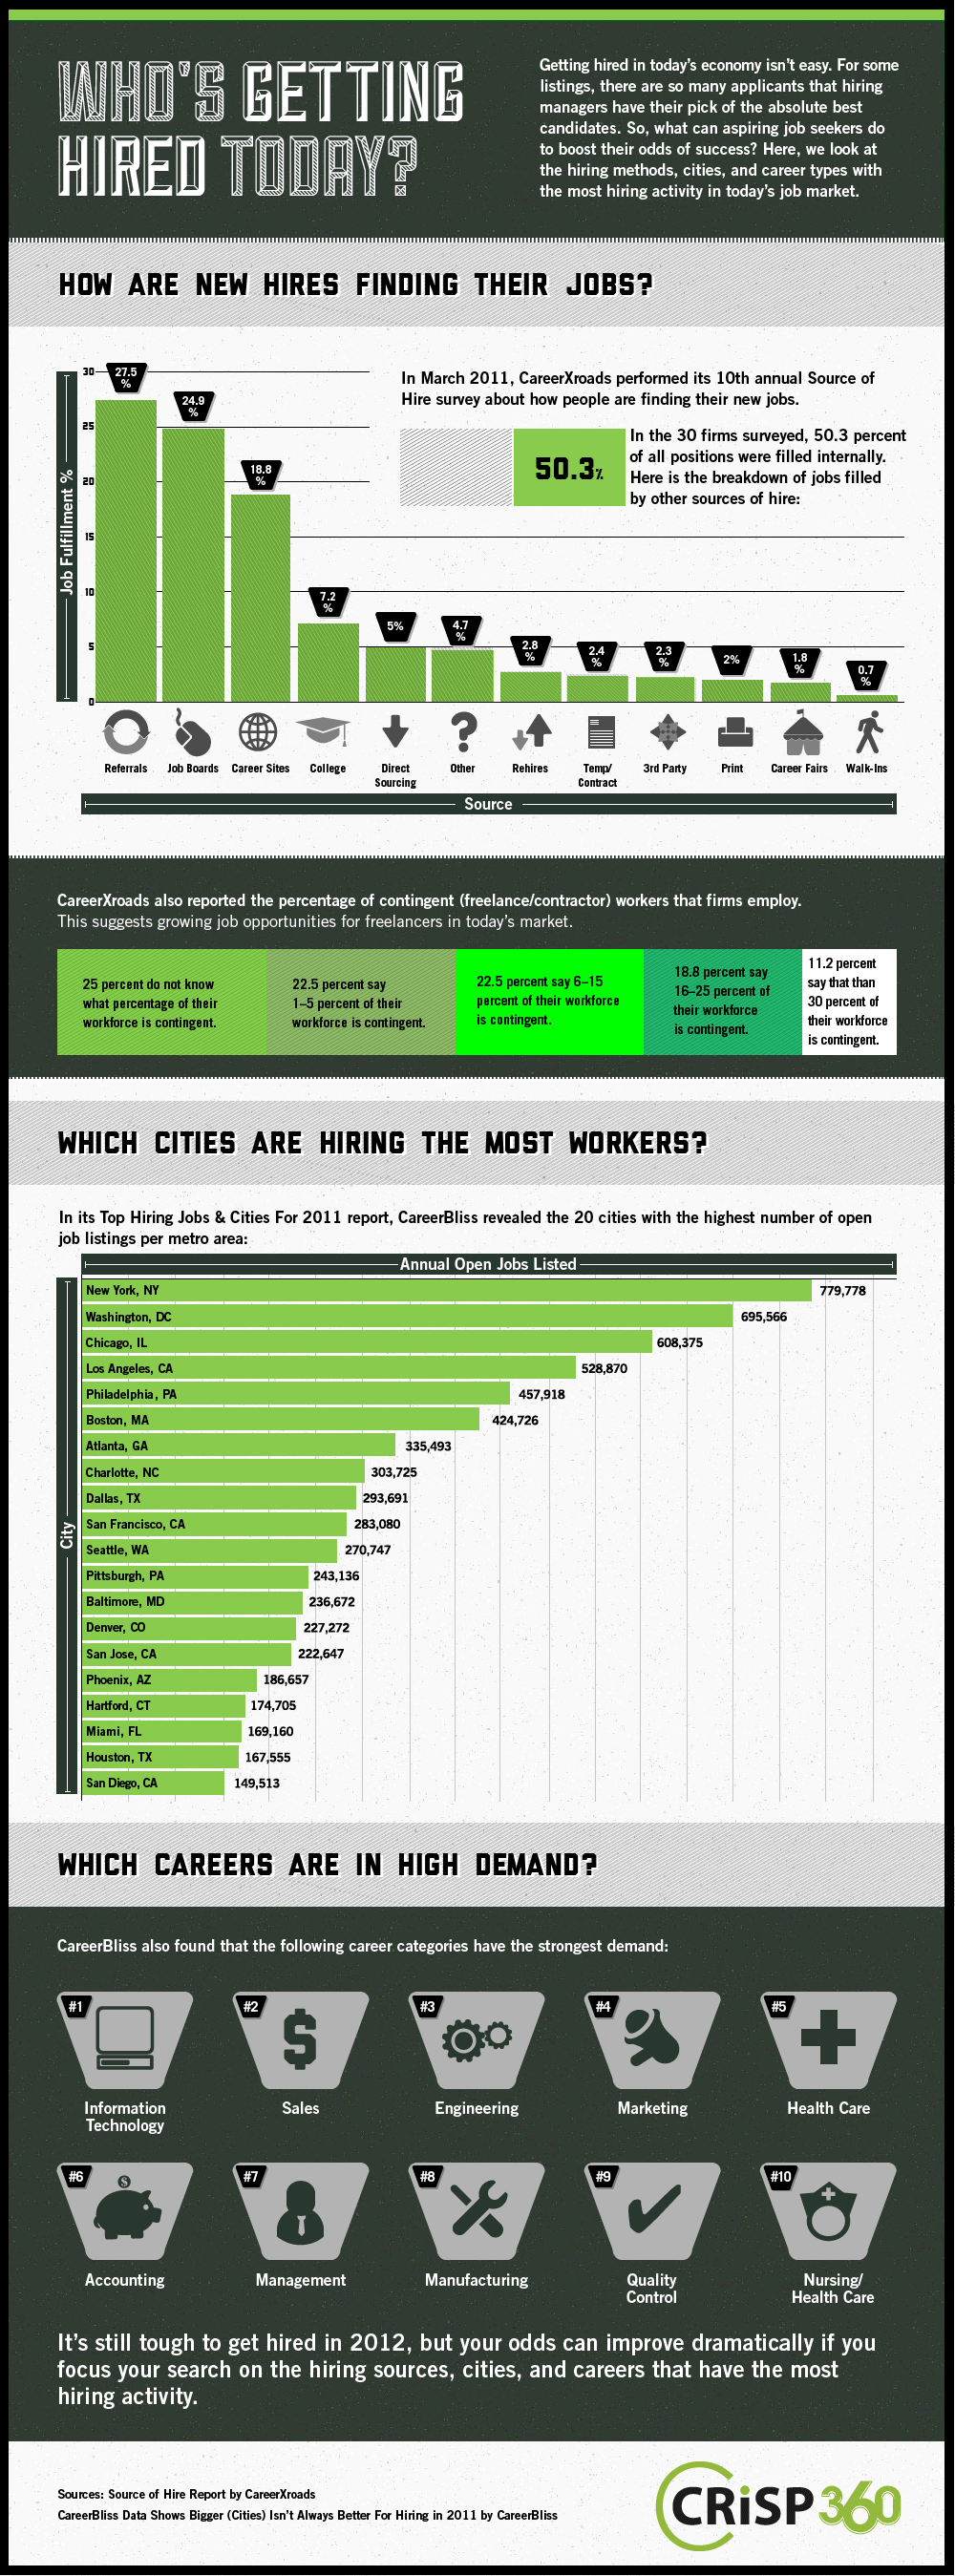 Getting hired in today's economy isn't easy. For some listings, there are so many applicants that hiring managers have their pick of the absolute best candidates.    So, what can aspiring job seekers do to boost their odds of success? Here, we look at the hiring methods, cities, and career types with the most hiring activity in today's job market.